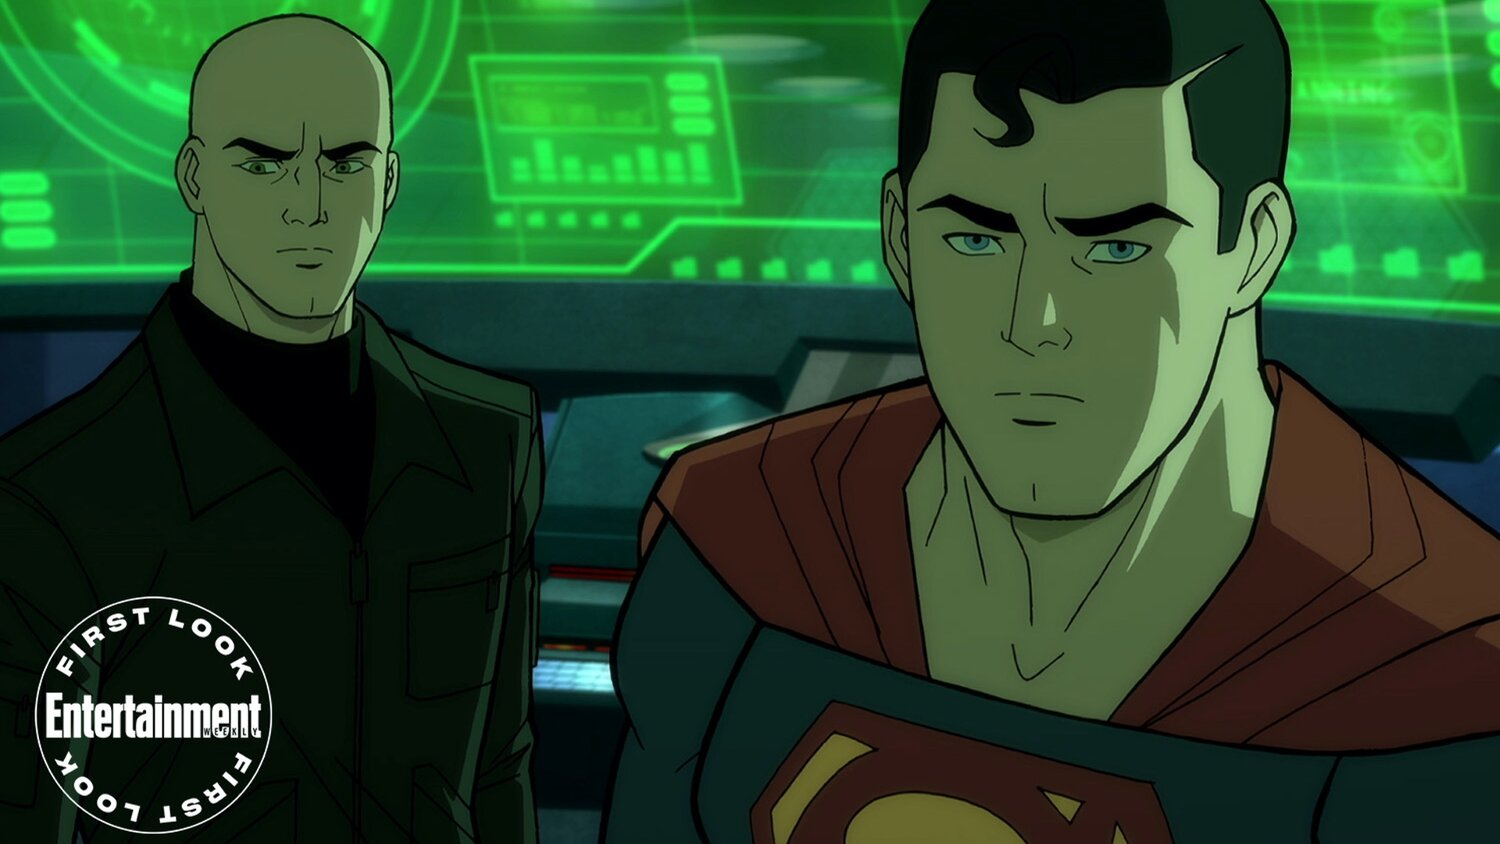 darren-criss-and-zachary-quinto-to-star-in-new-superman-animated-film-superman-man-of-tomorrow-social